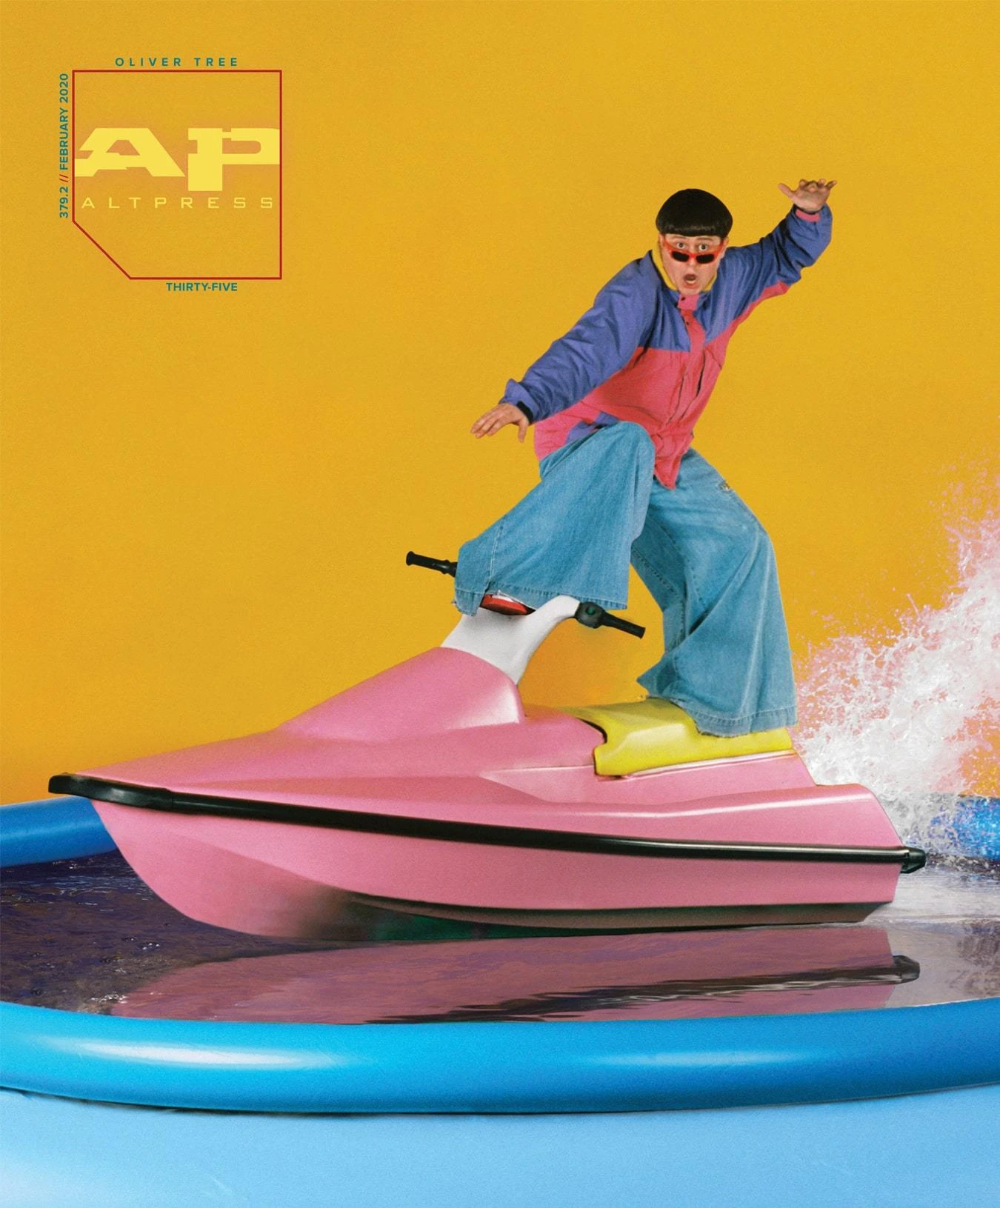 Oliver Tree Alternative Press Magazine Issue 379 Version